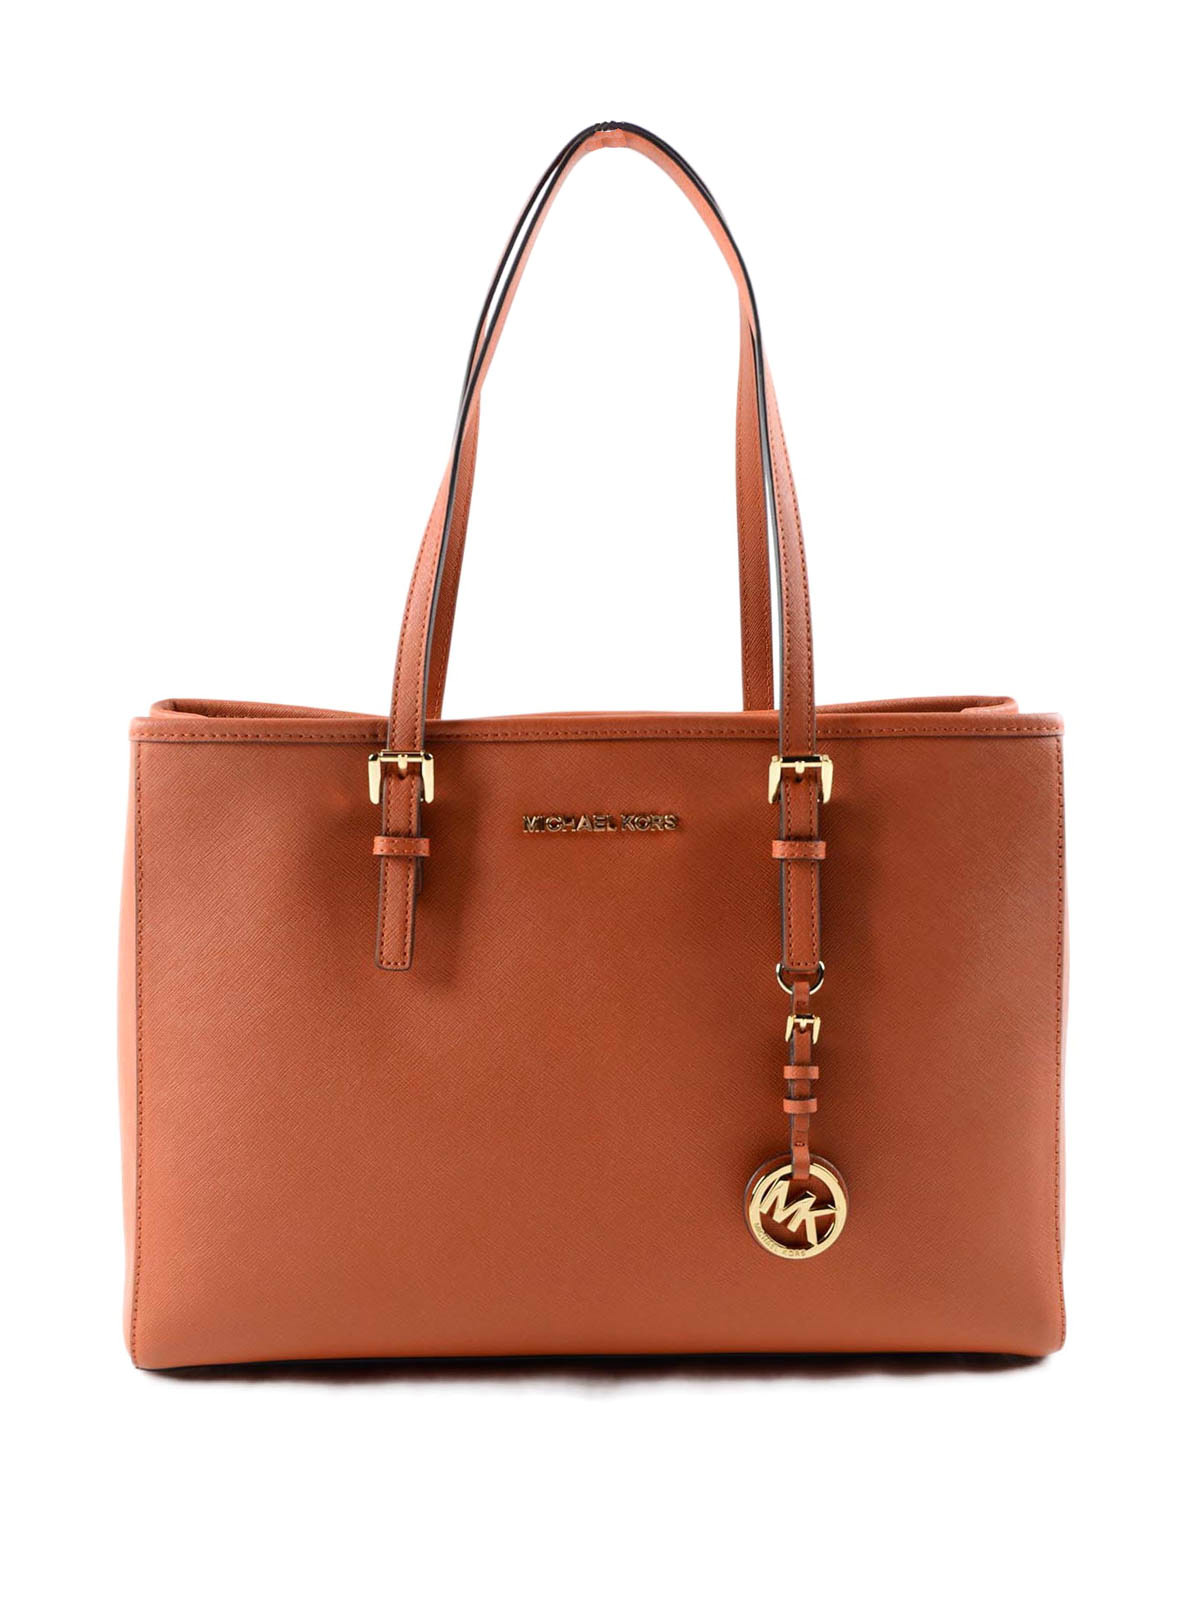 Michael Kors Jet Set Tote Laukku : Jet set travel large tote by michael kors totes bags ikrix